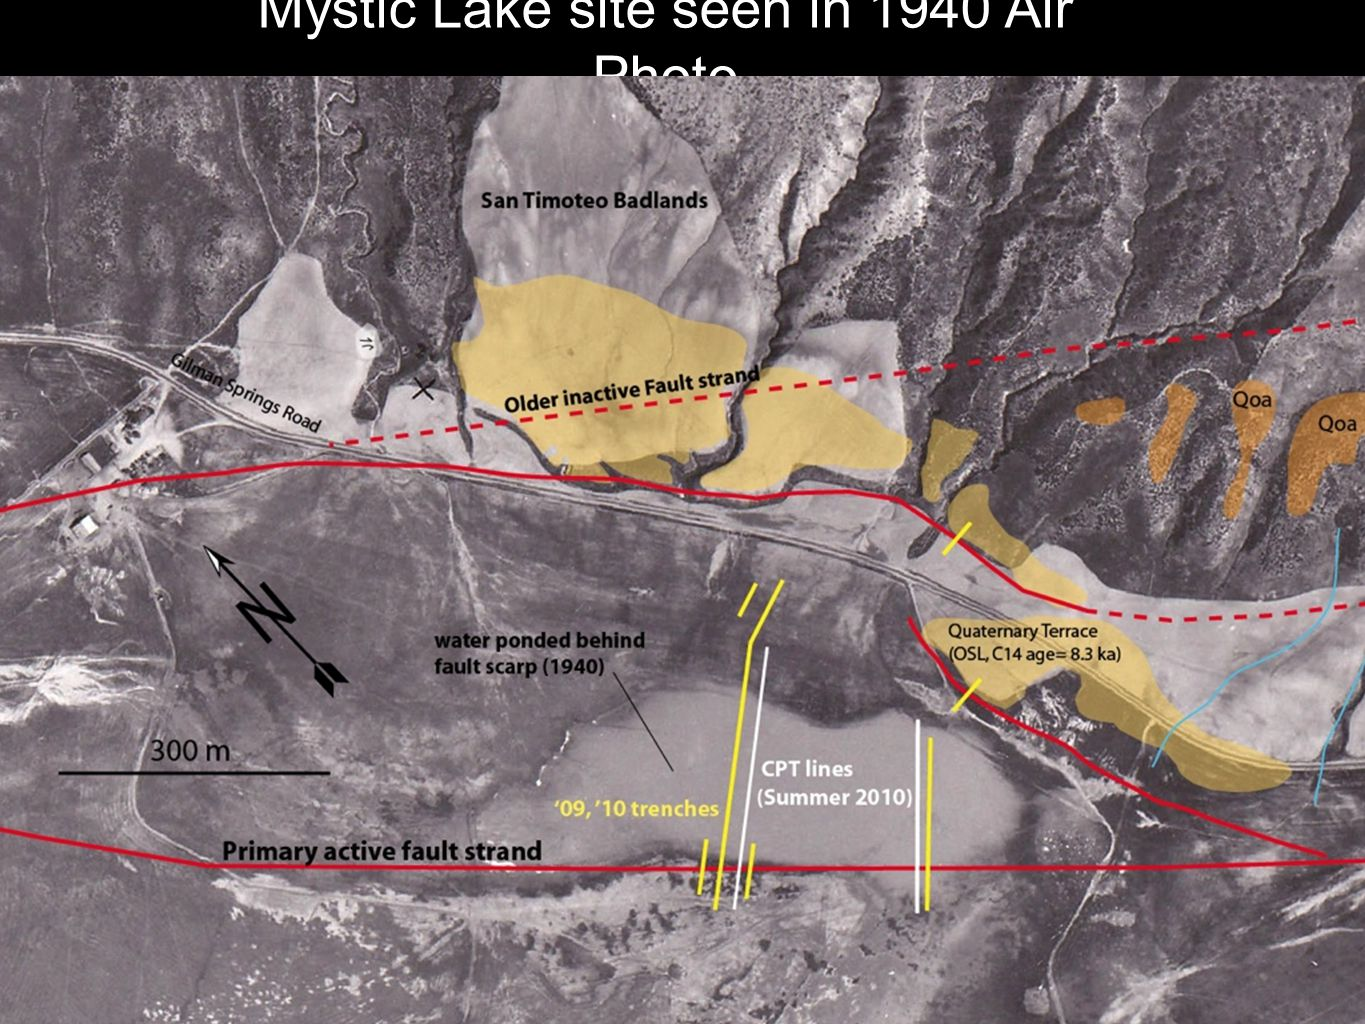 Mystic Lake site seen in 1940 Air Photo